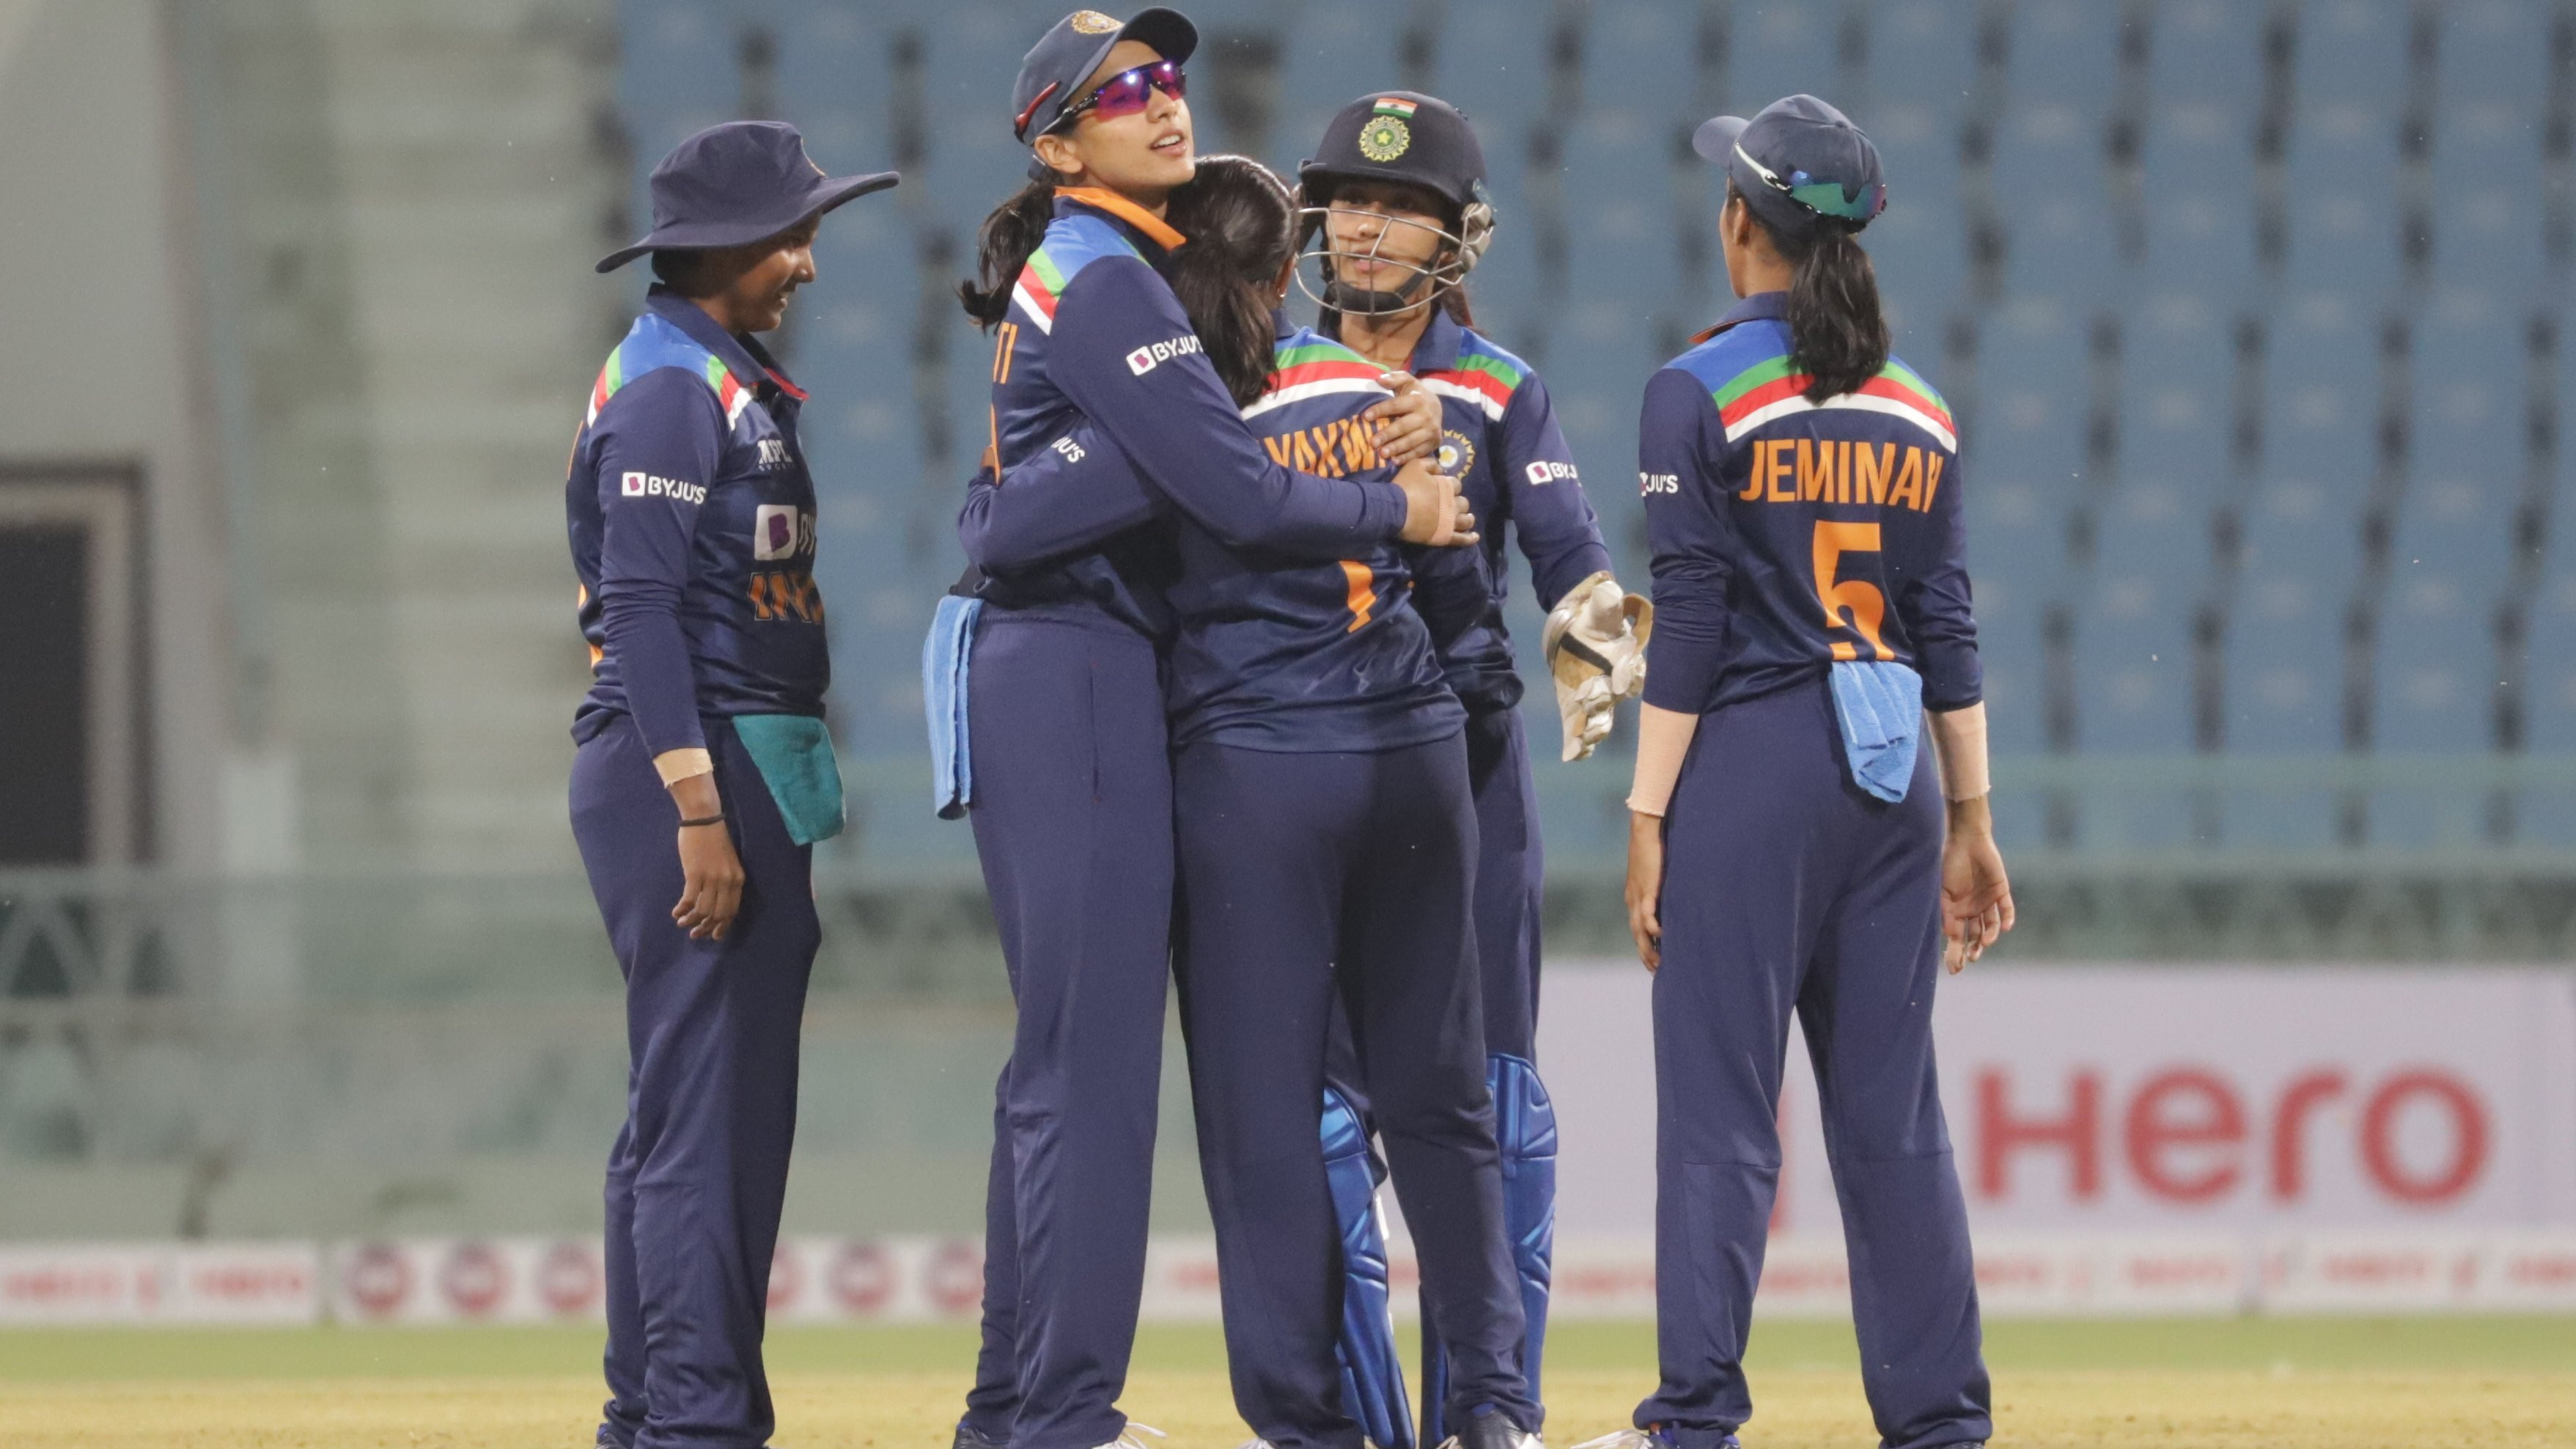 """INDW v SAW 2021: """"It's a bitter pill to swallow"""", Mandhana dejected after India's heartbreaking loss in 2nd T20I"""